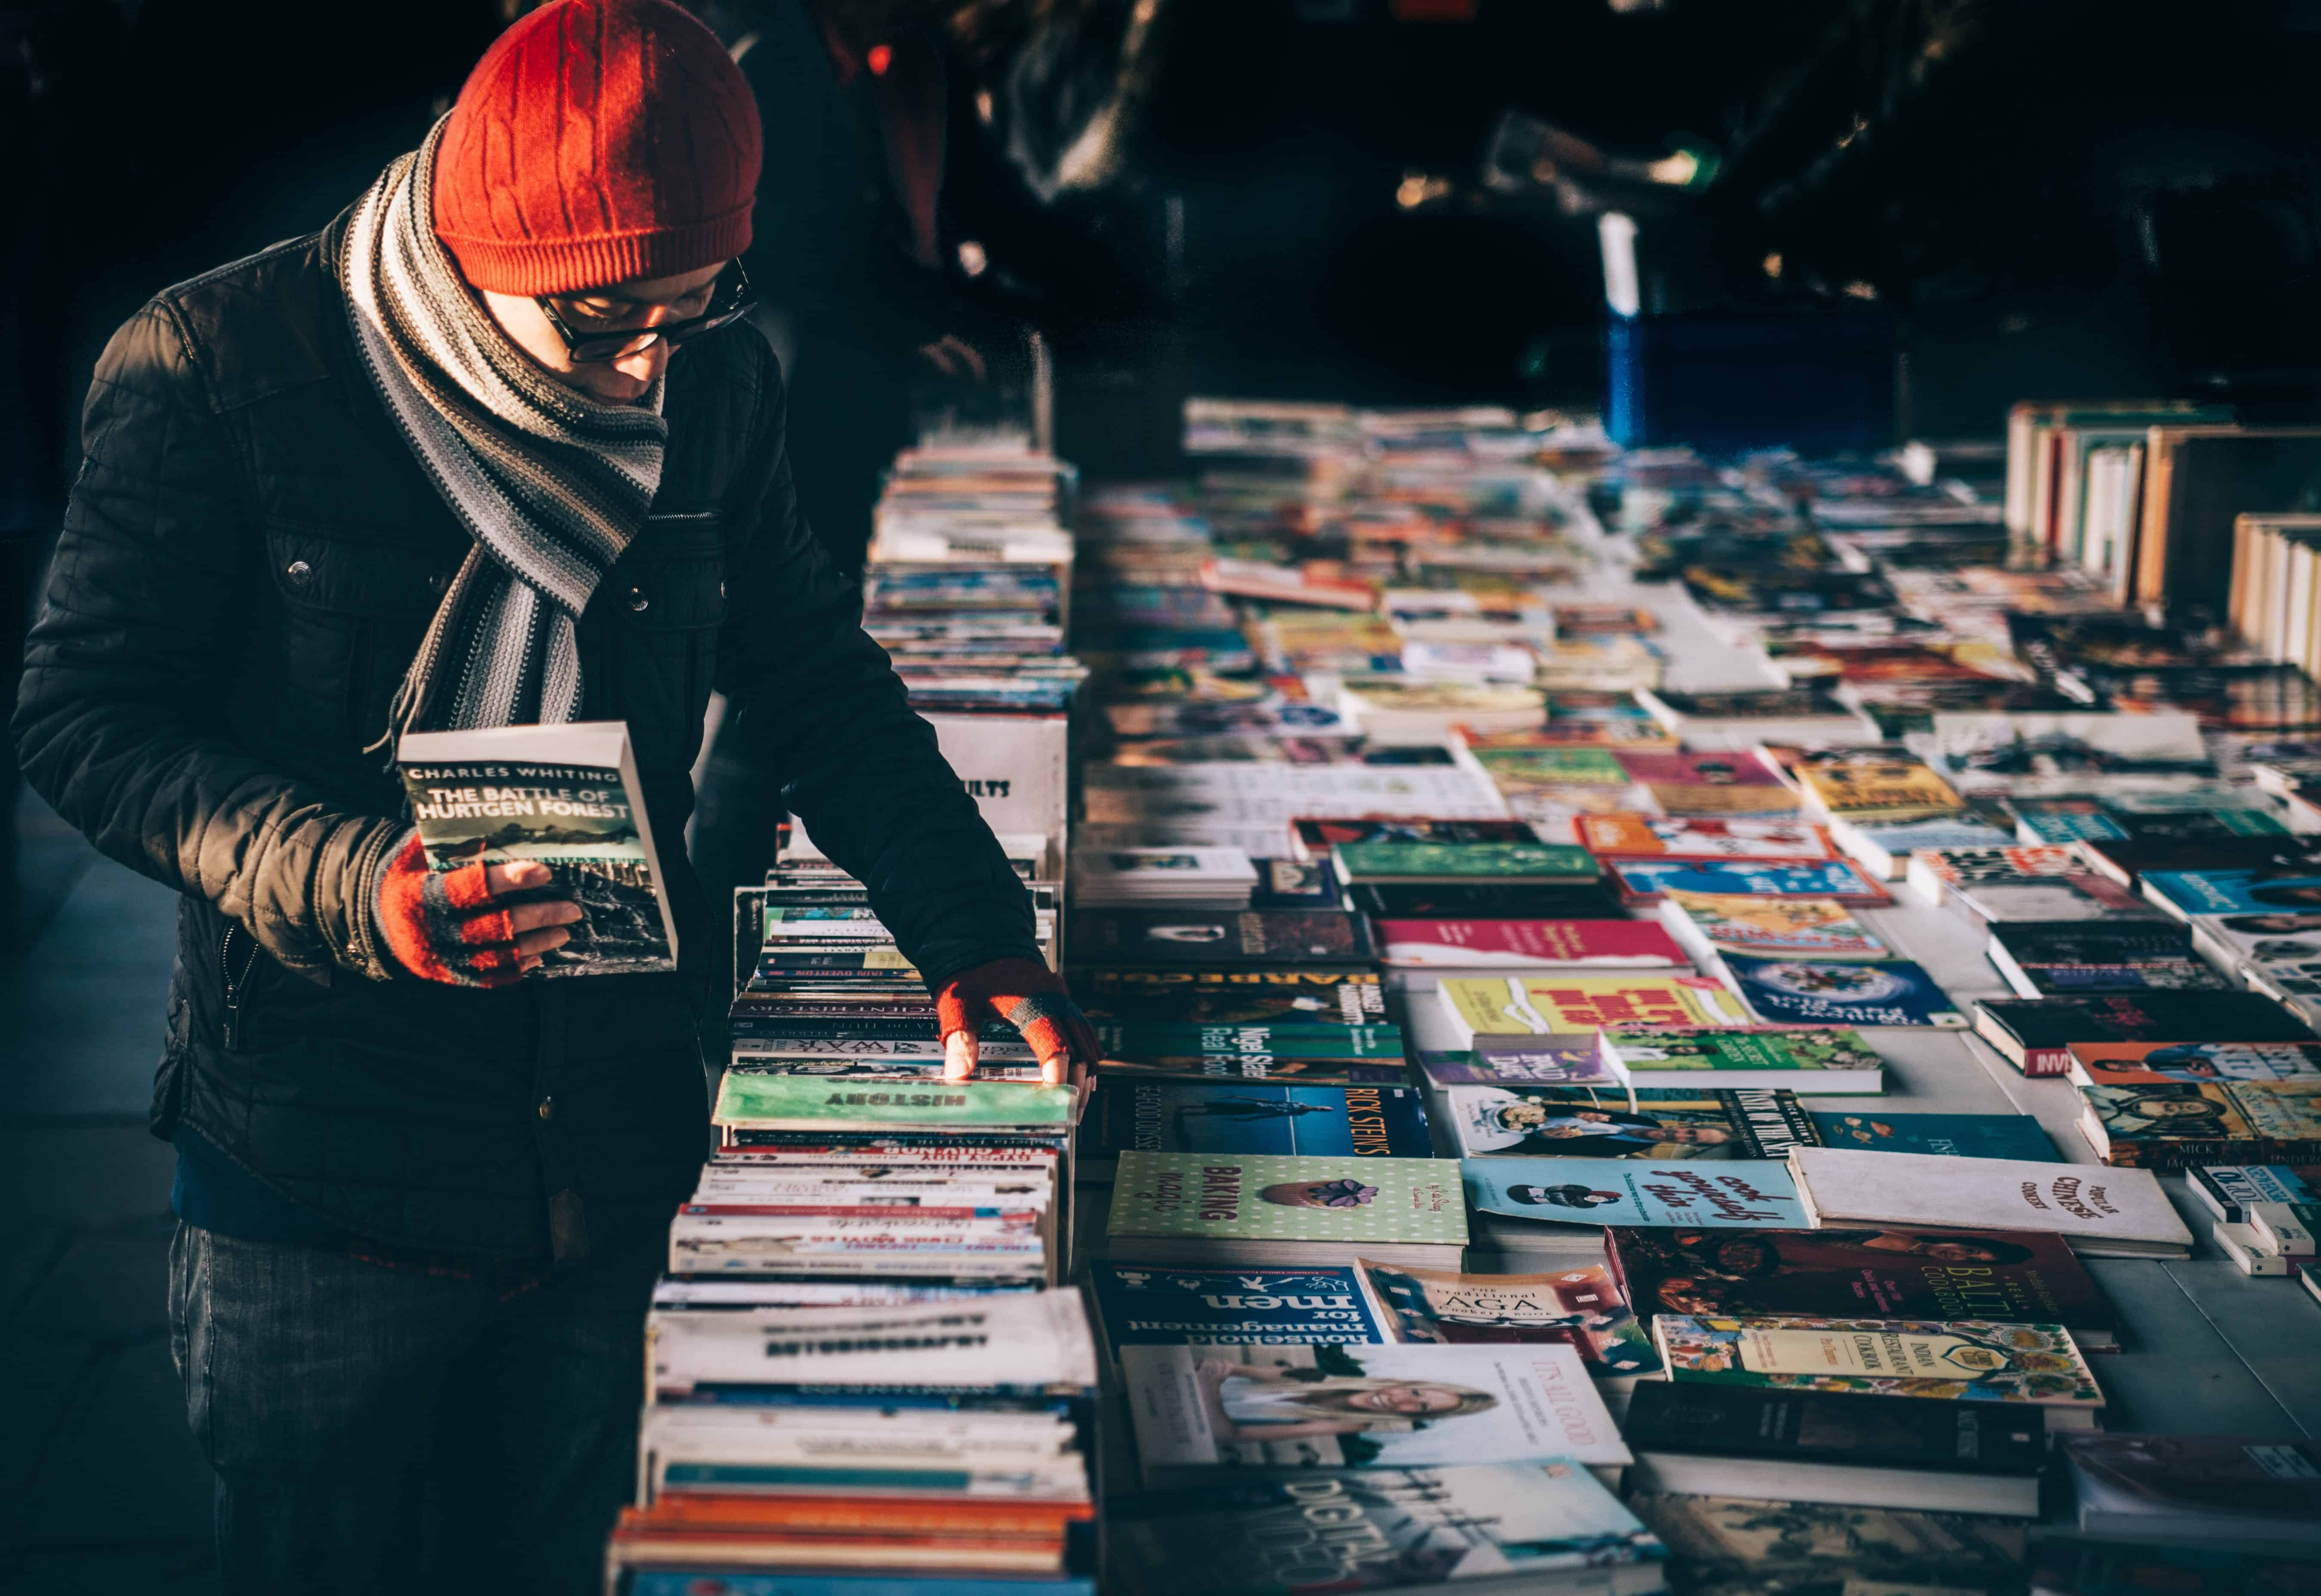 Man dressed in winter clothes looking at a book stall on the street with one book in his hand.